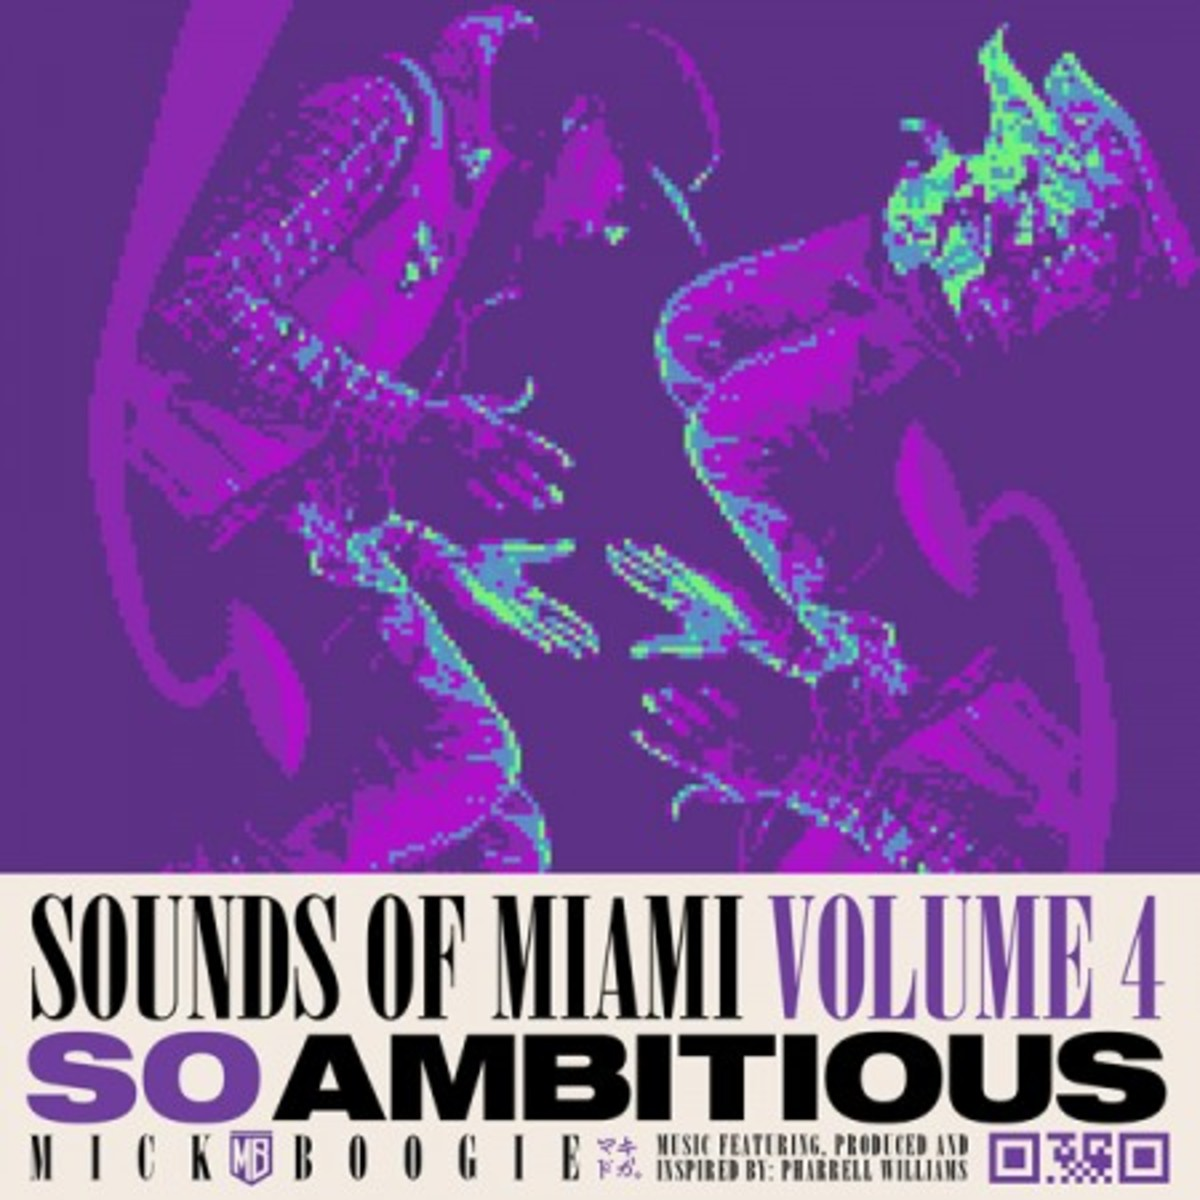 mick-boogie-sounds-of-miami-volume-4-so-ambitious-1